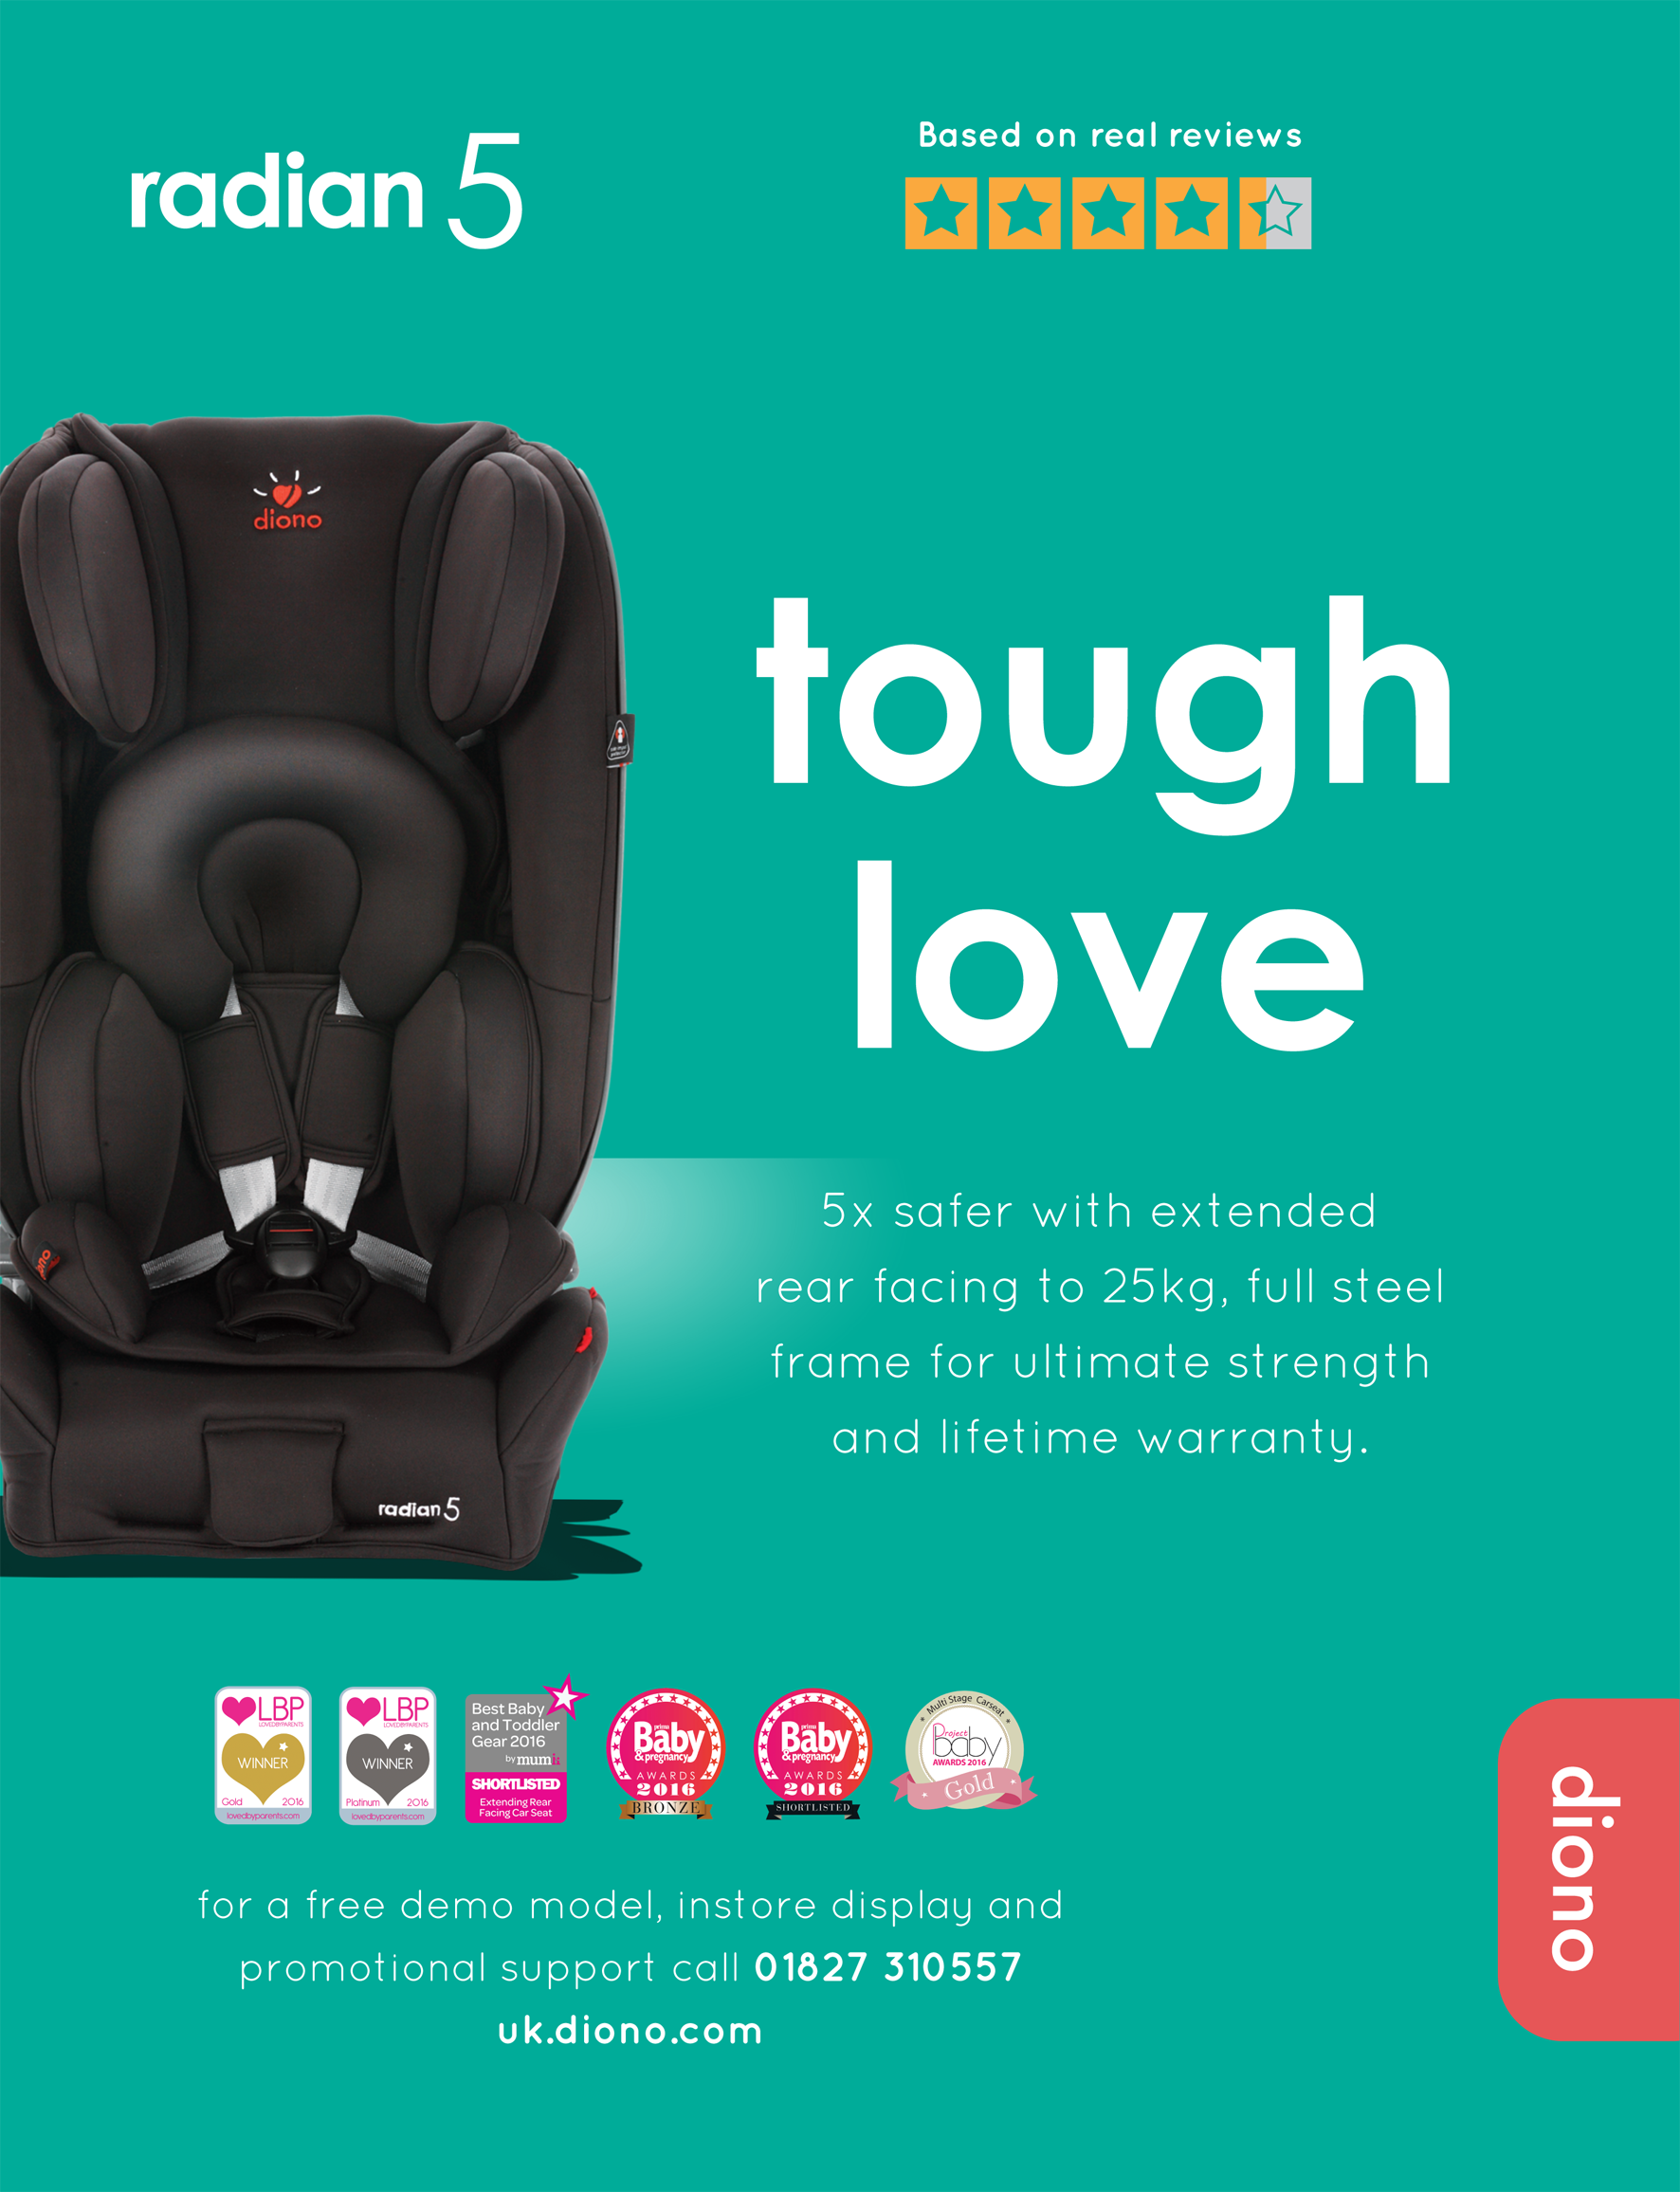 Diono-2017-080-Tough-Love-315x240-Nursery-Today